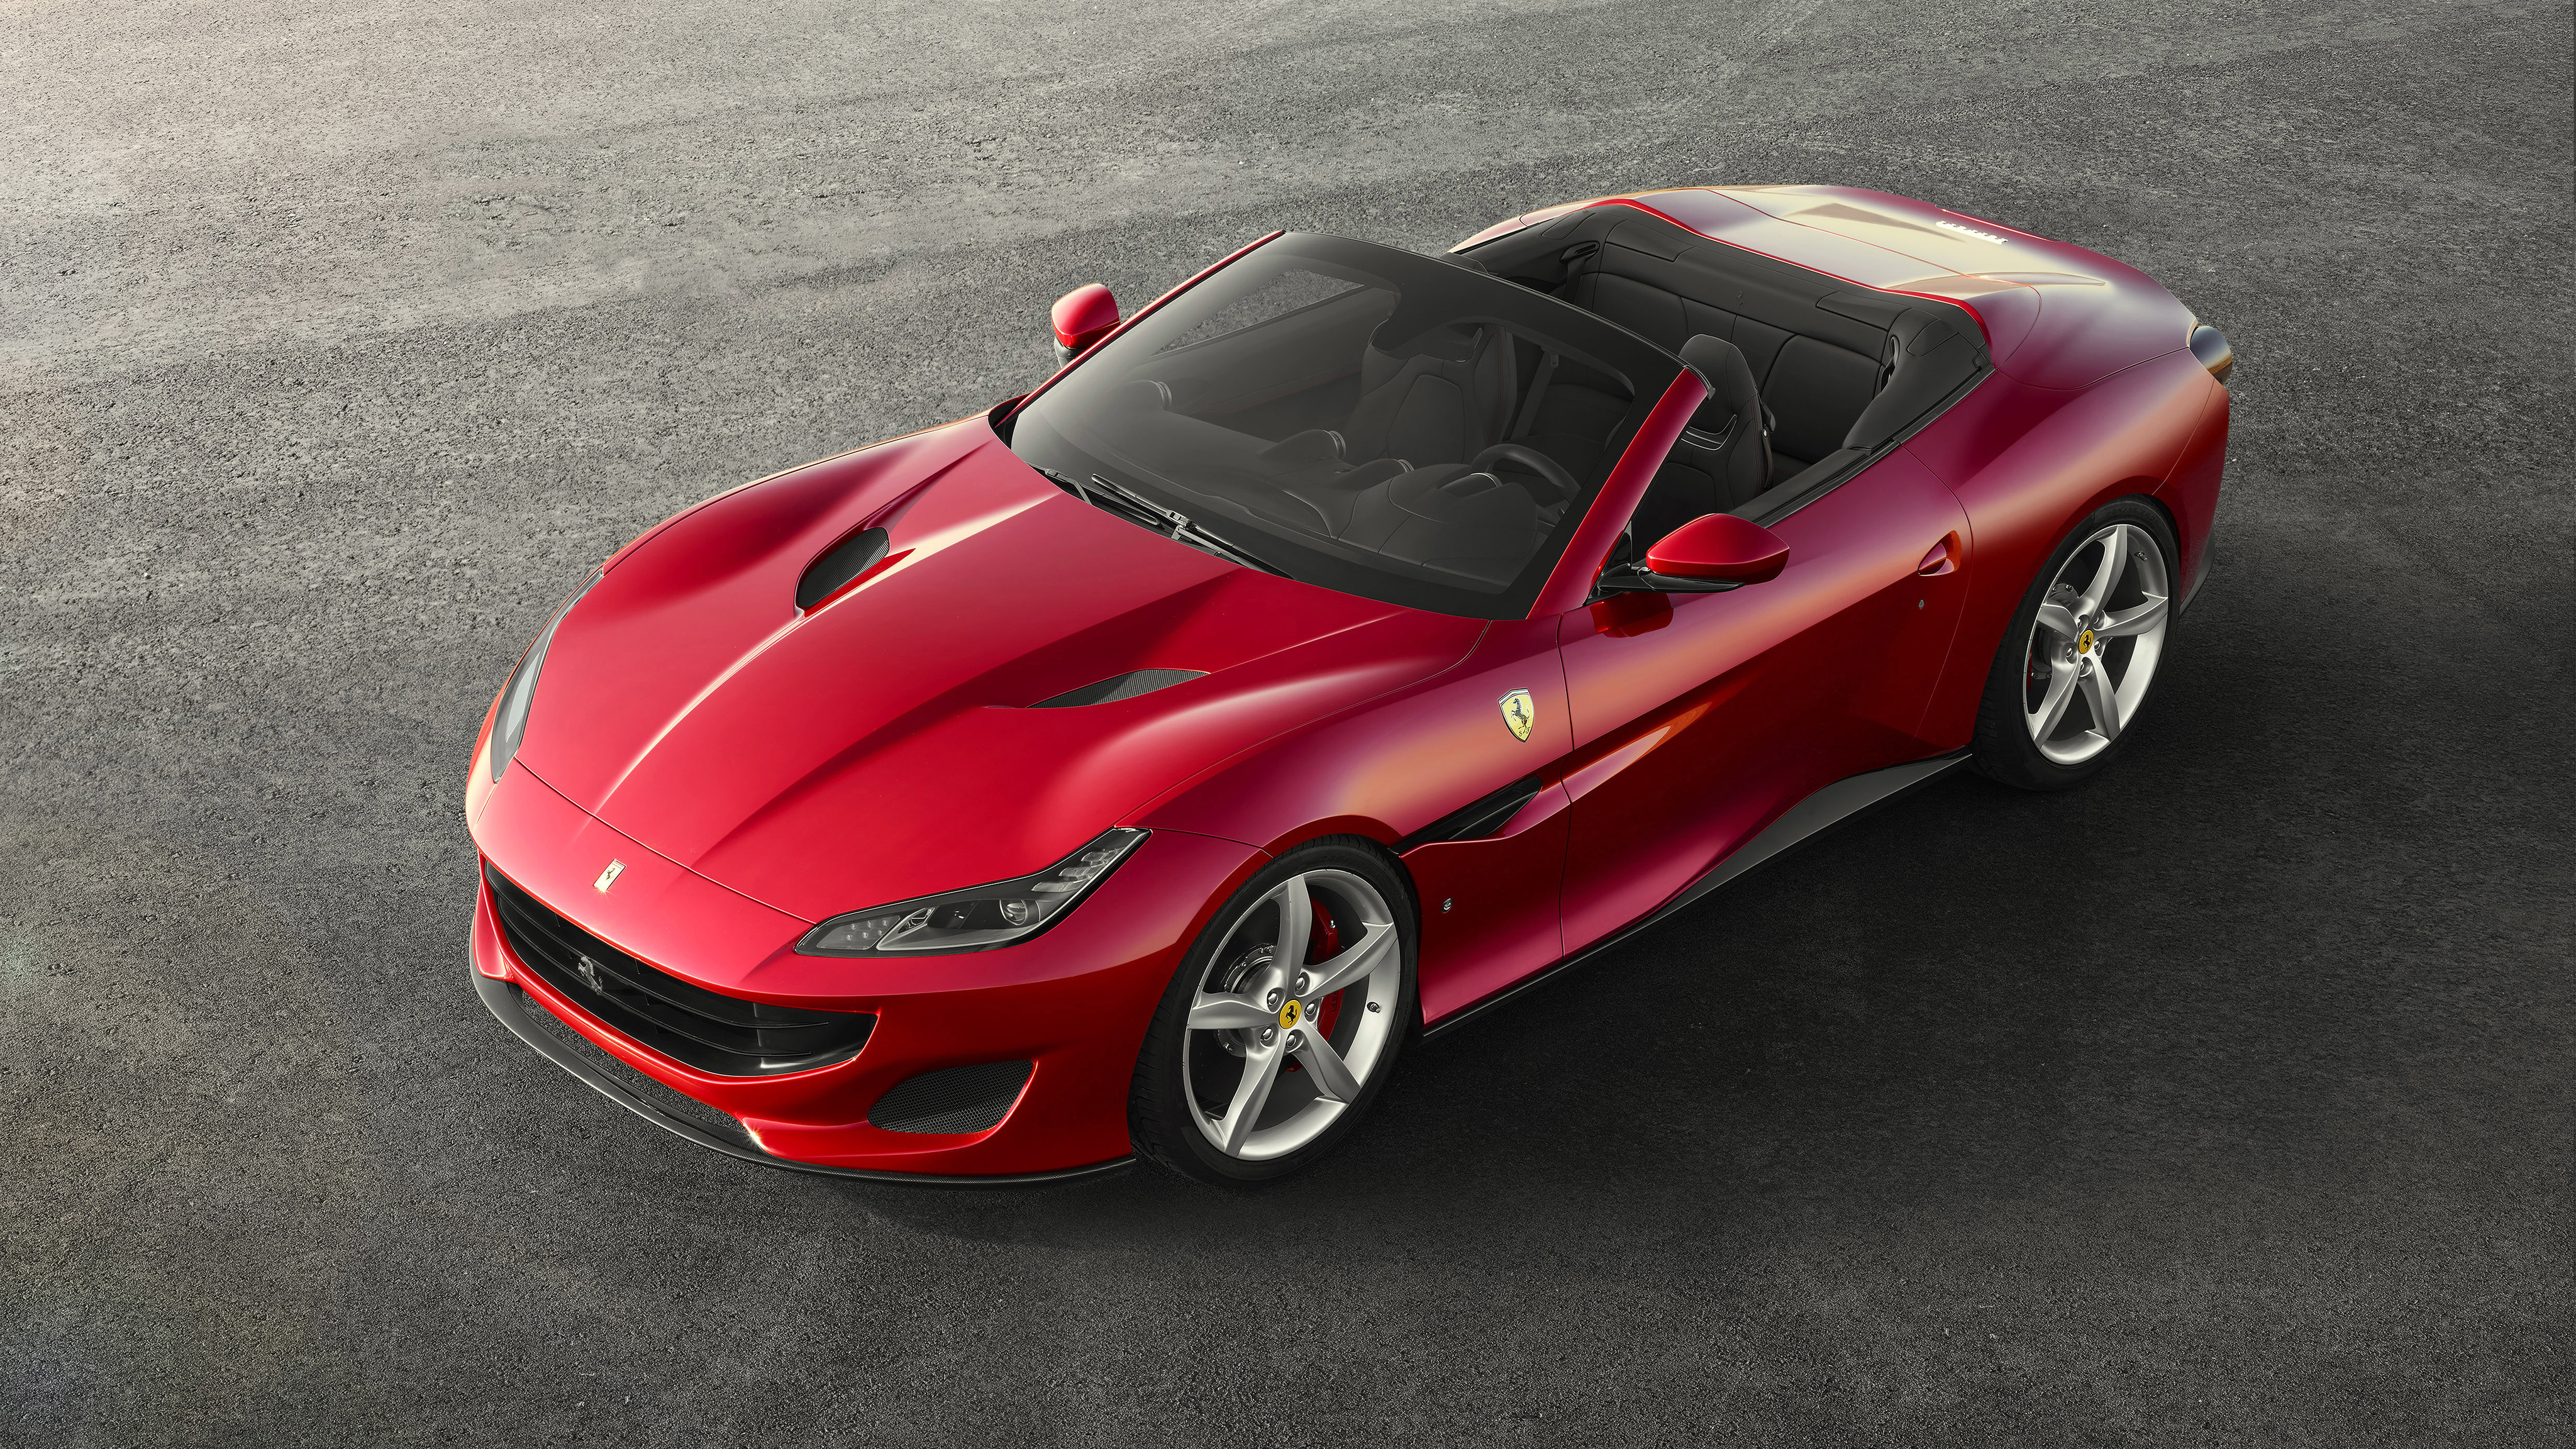 ferrari portofino 2018 4k wallpaper | hd car wallpapers | id #9251